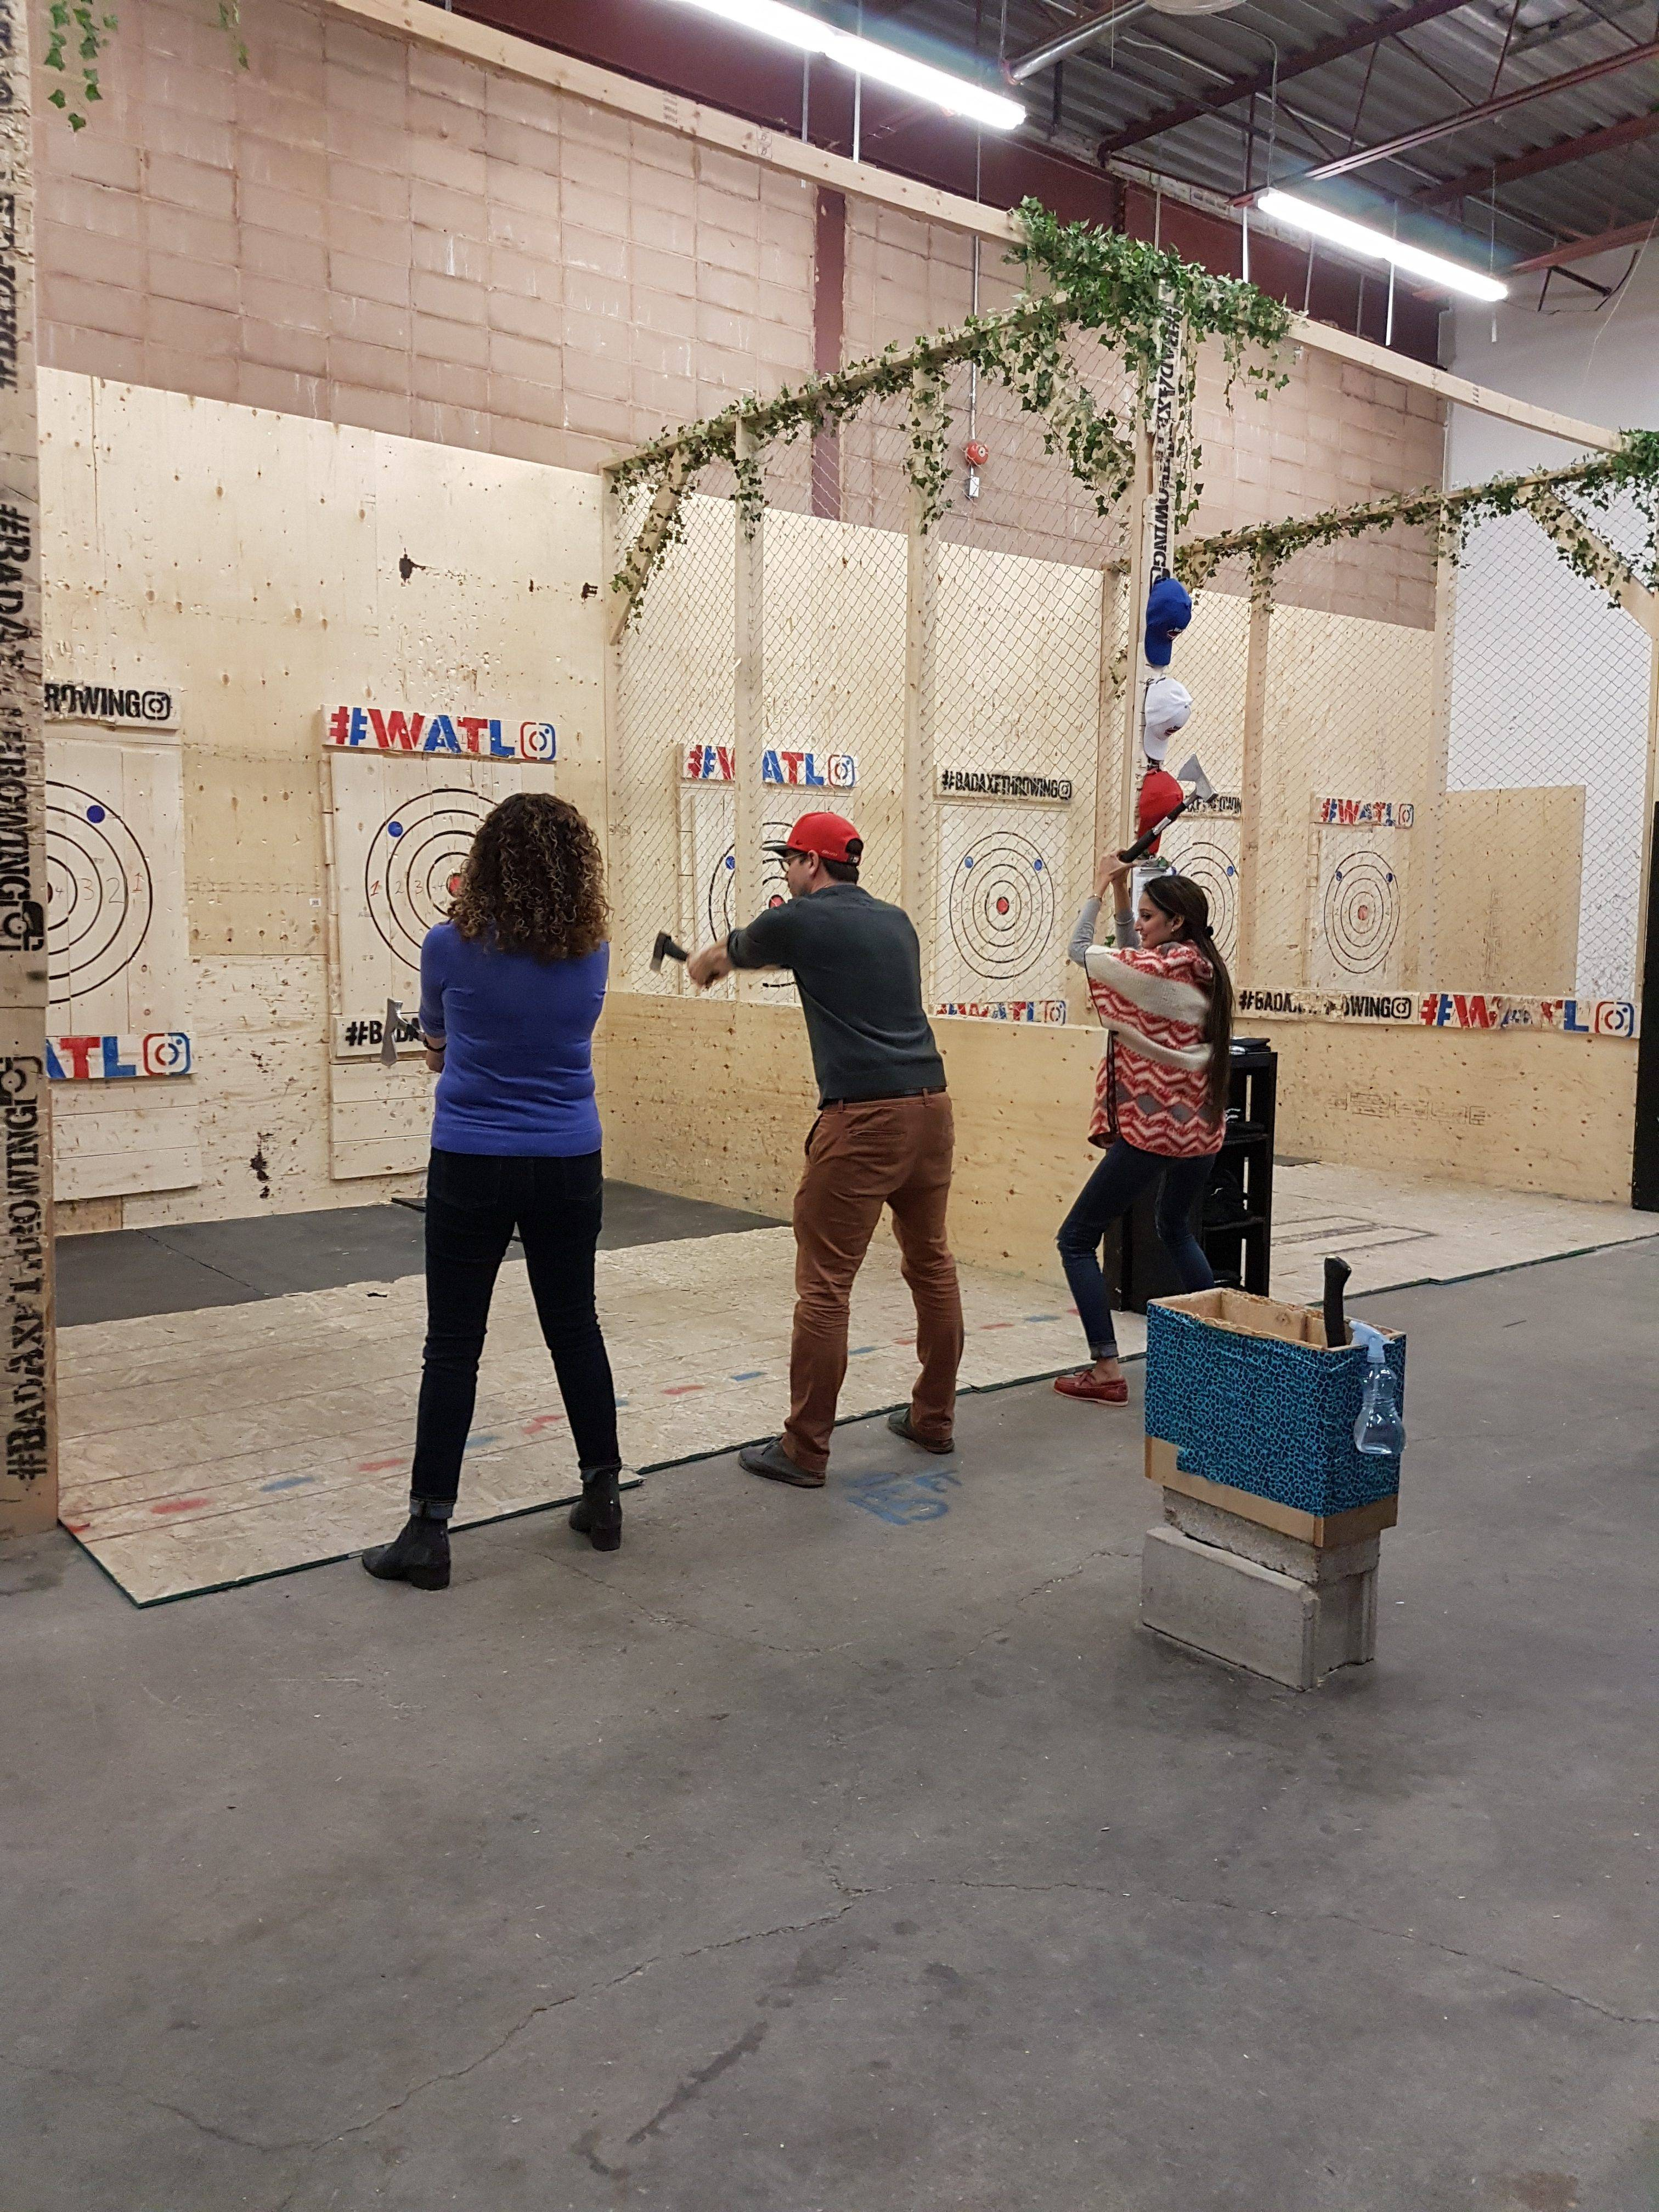 Jan and Robin throwing axes